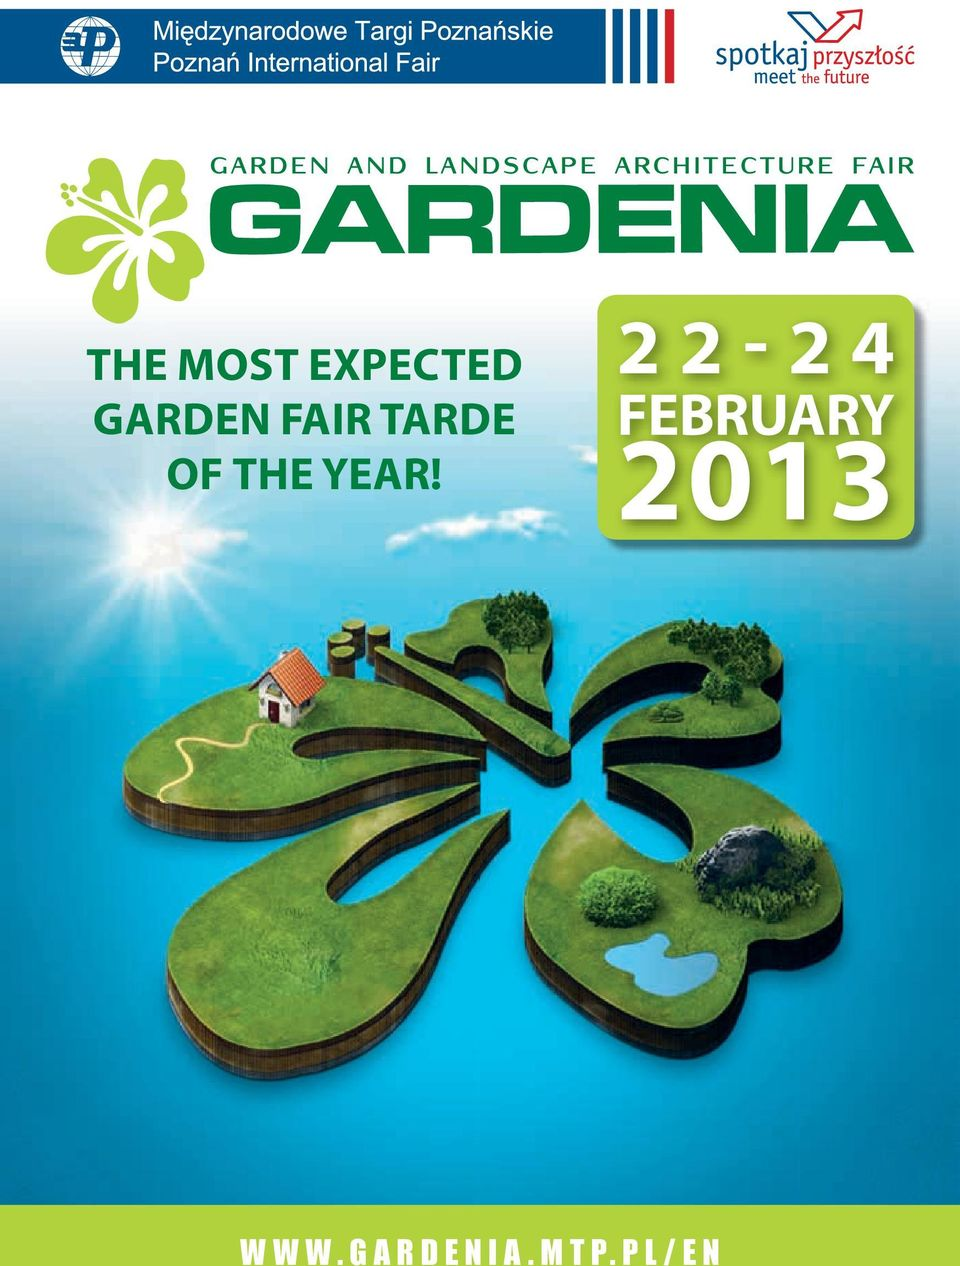 EXPECTED GARDEN FAIR TARDE OF